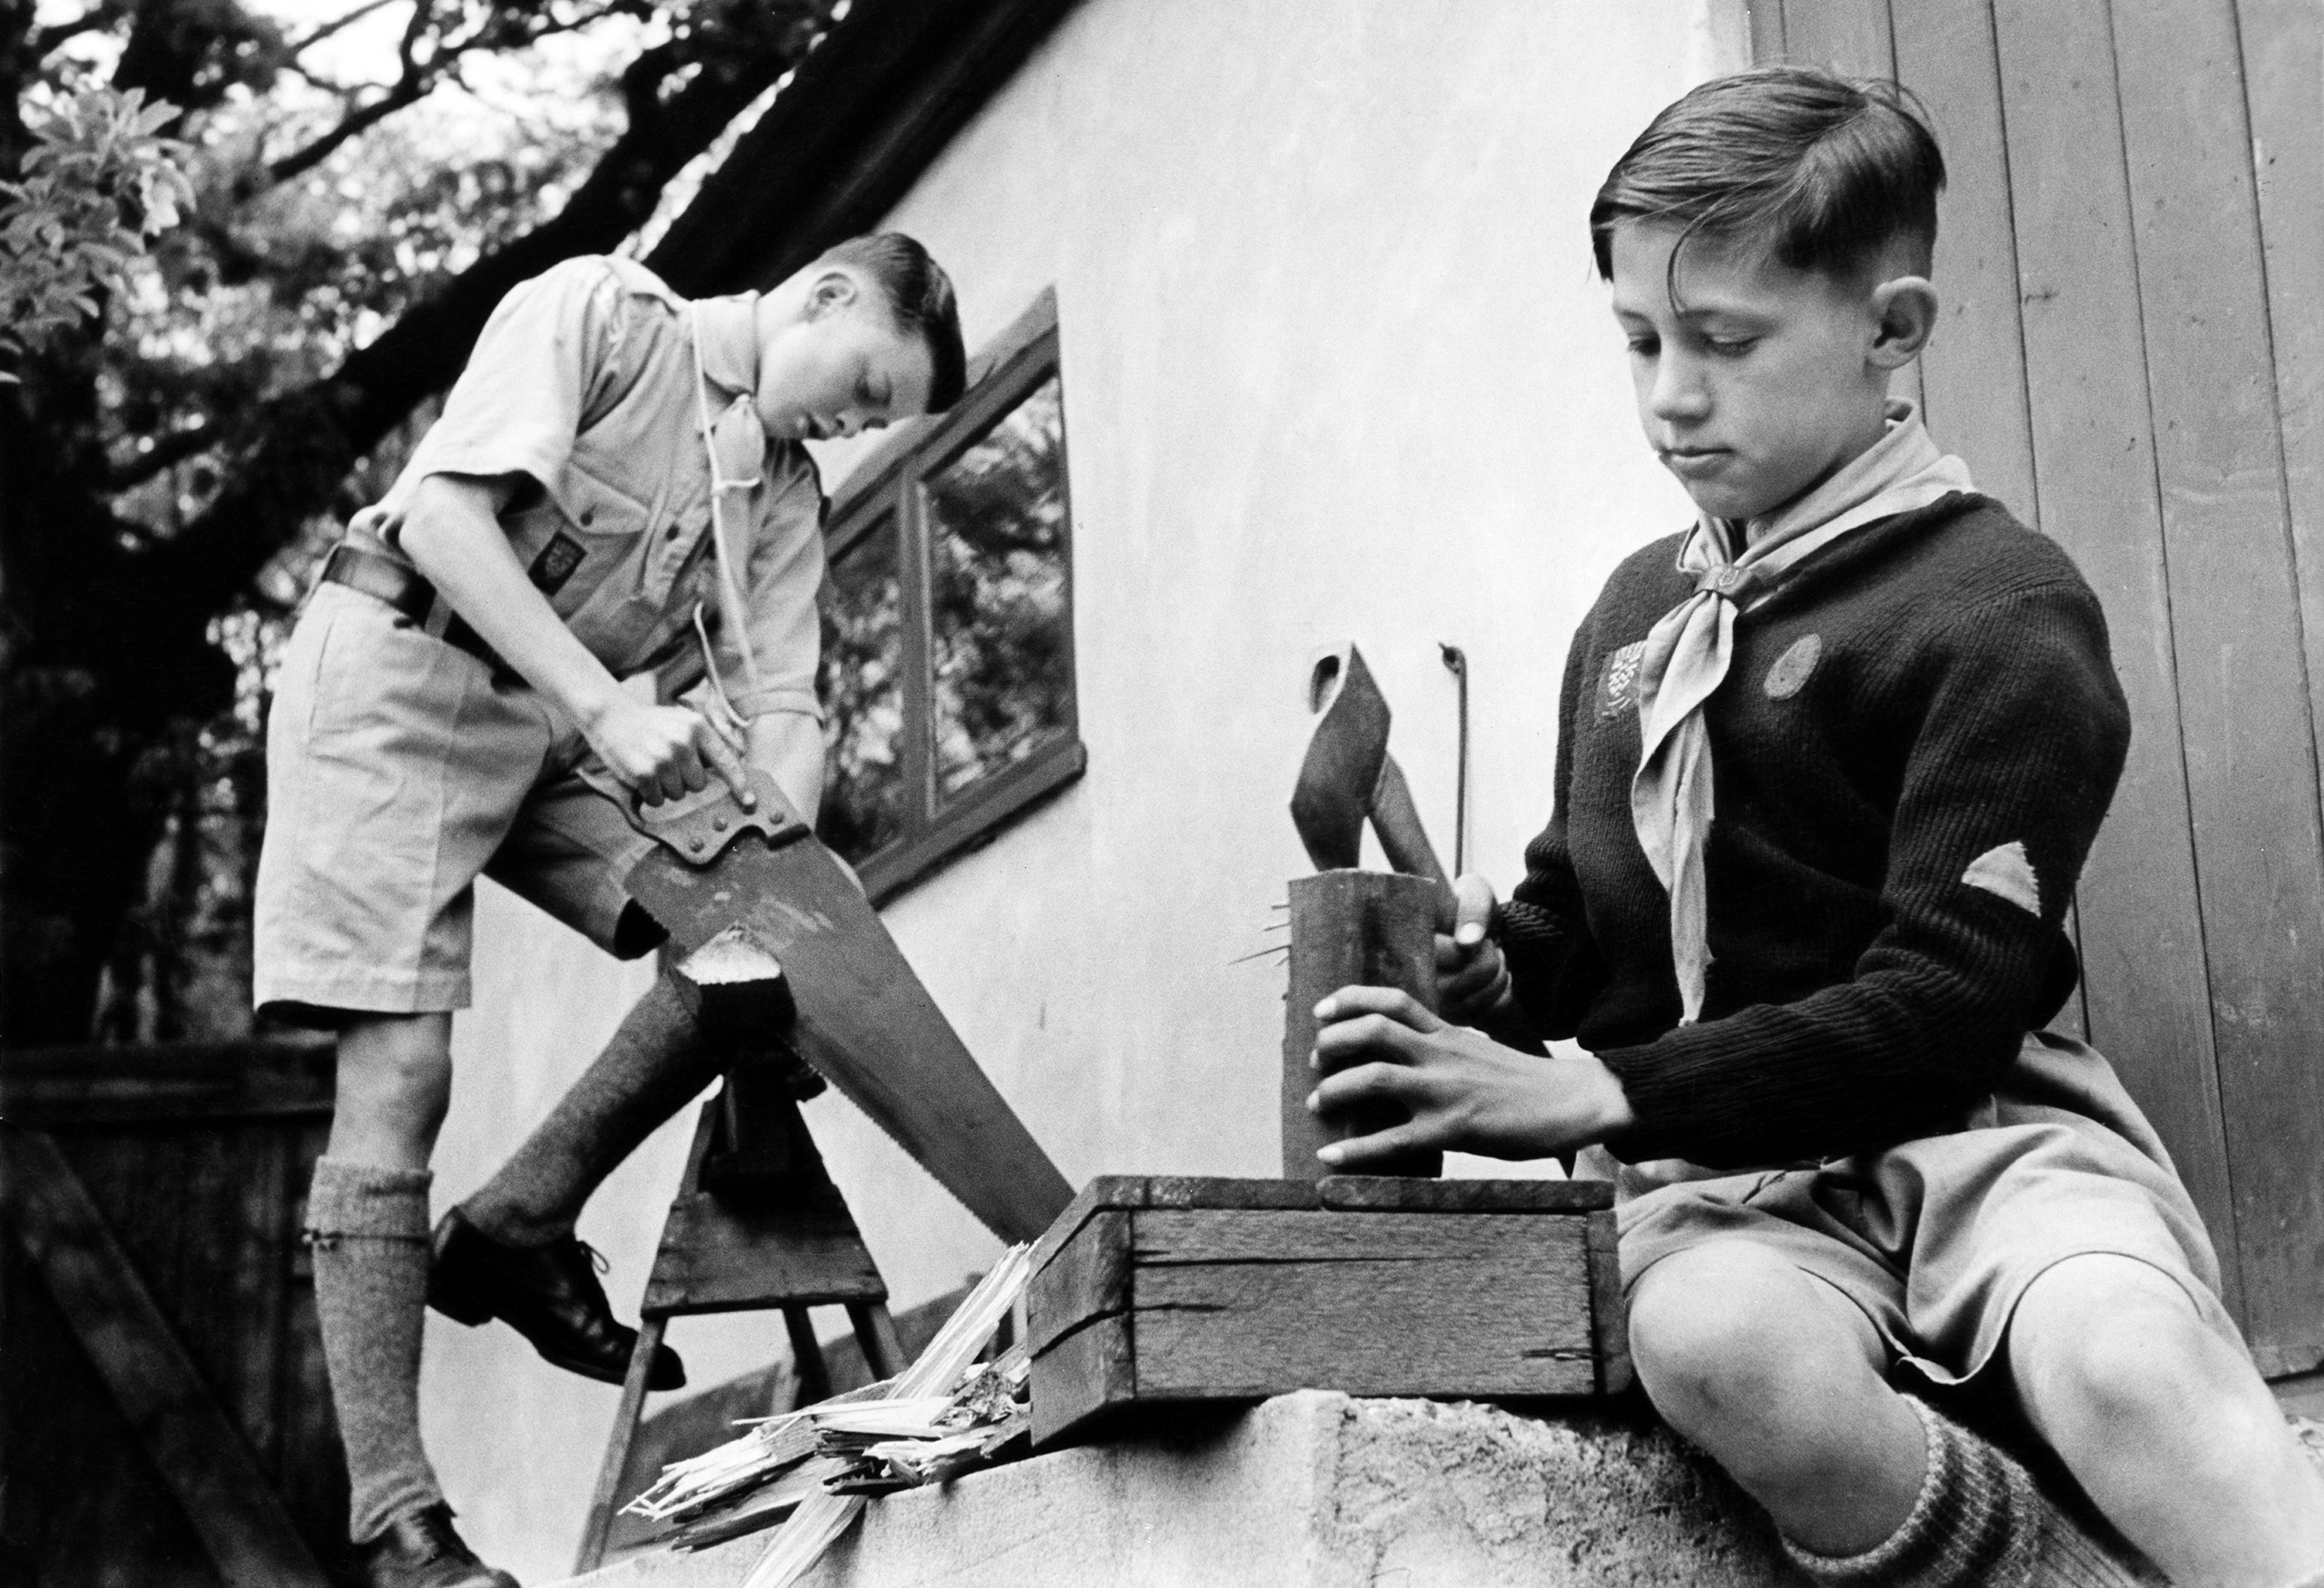 Boy scouts of the 7th Royal Eltham Troop earning money for the Boy Scout Association by chopping firewood, 1949.